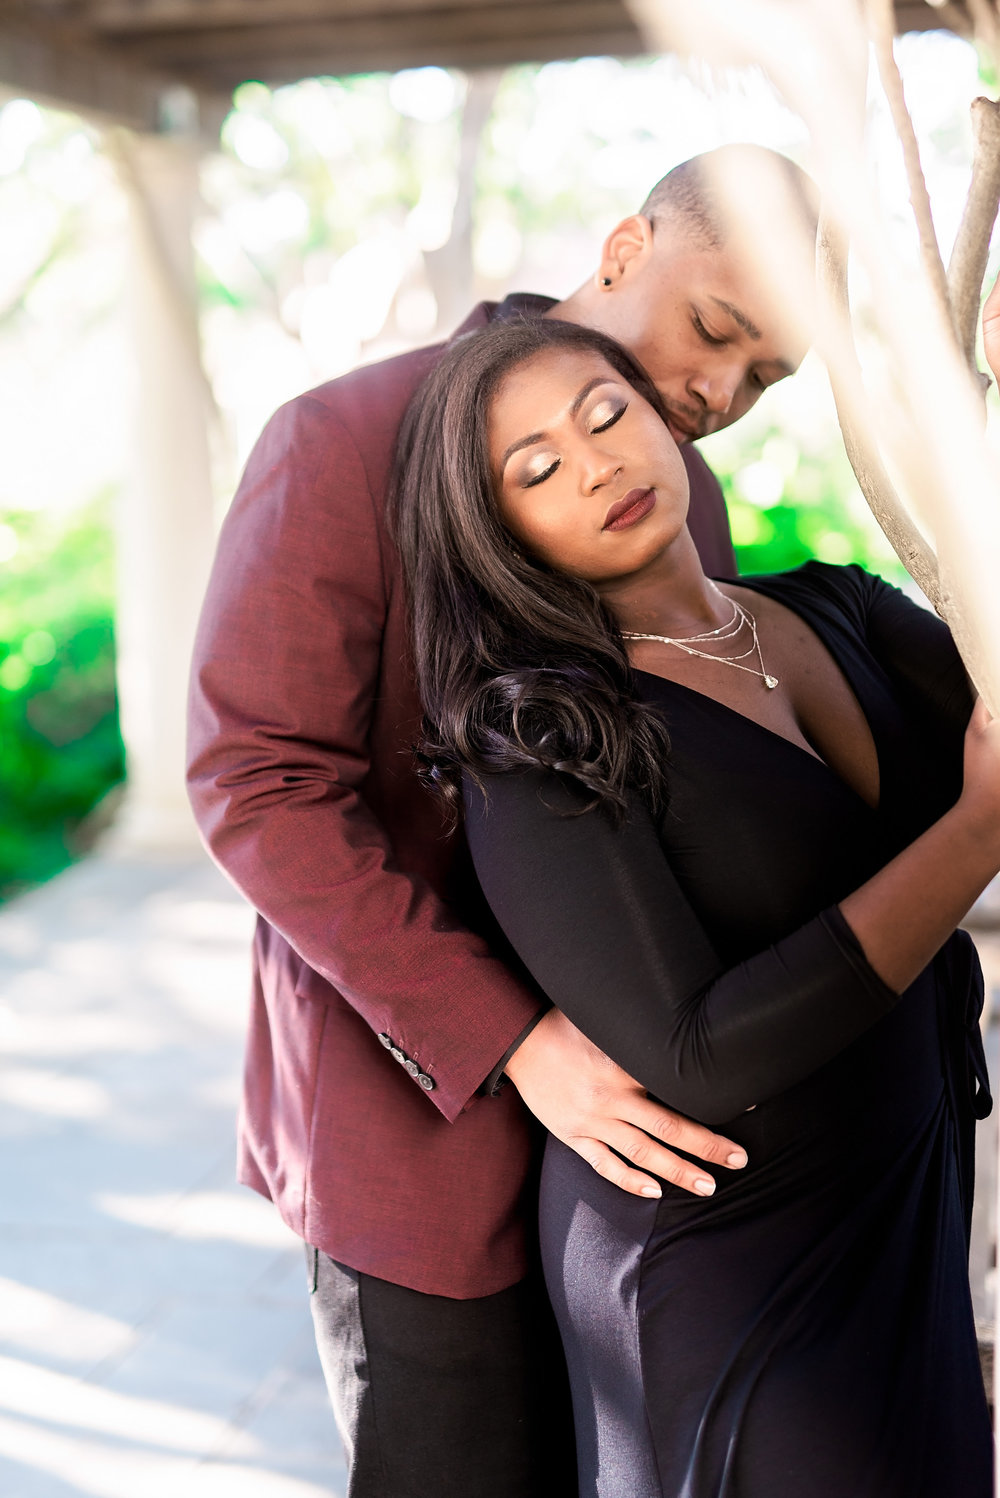 Kevin-Adriana-Pharris-Photography-Engagement-Photoshoot-5.jpg